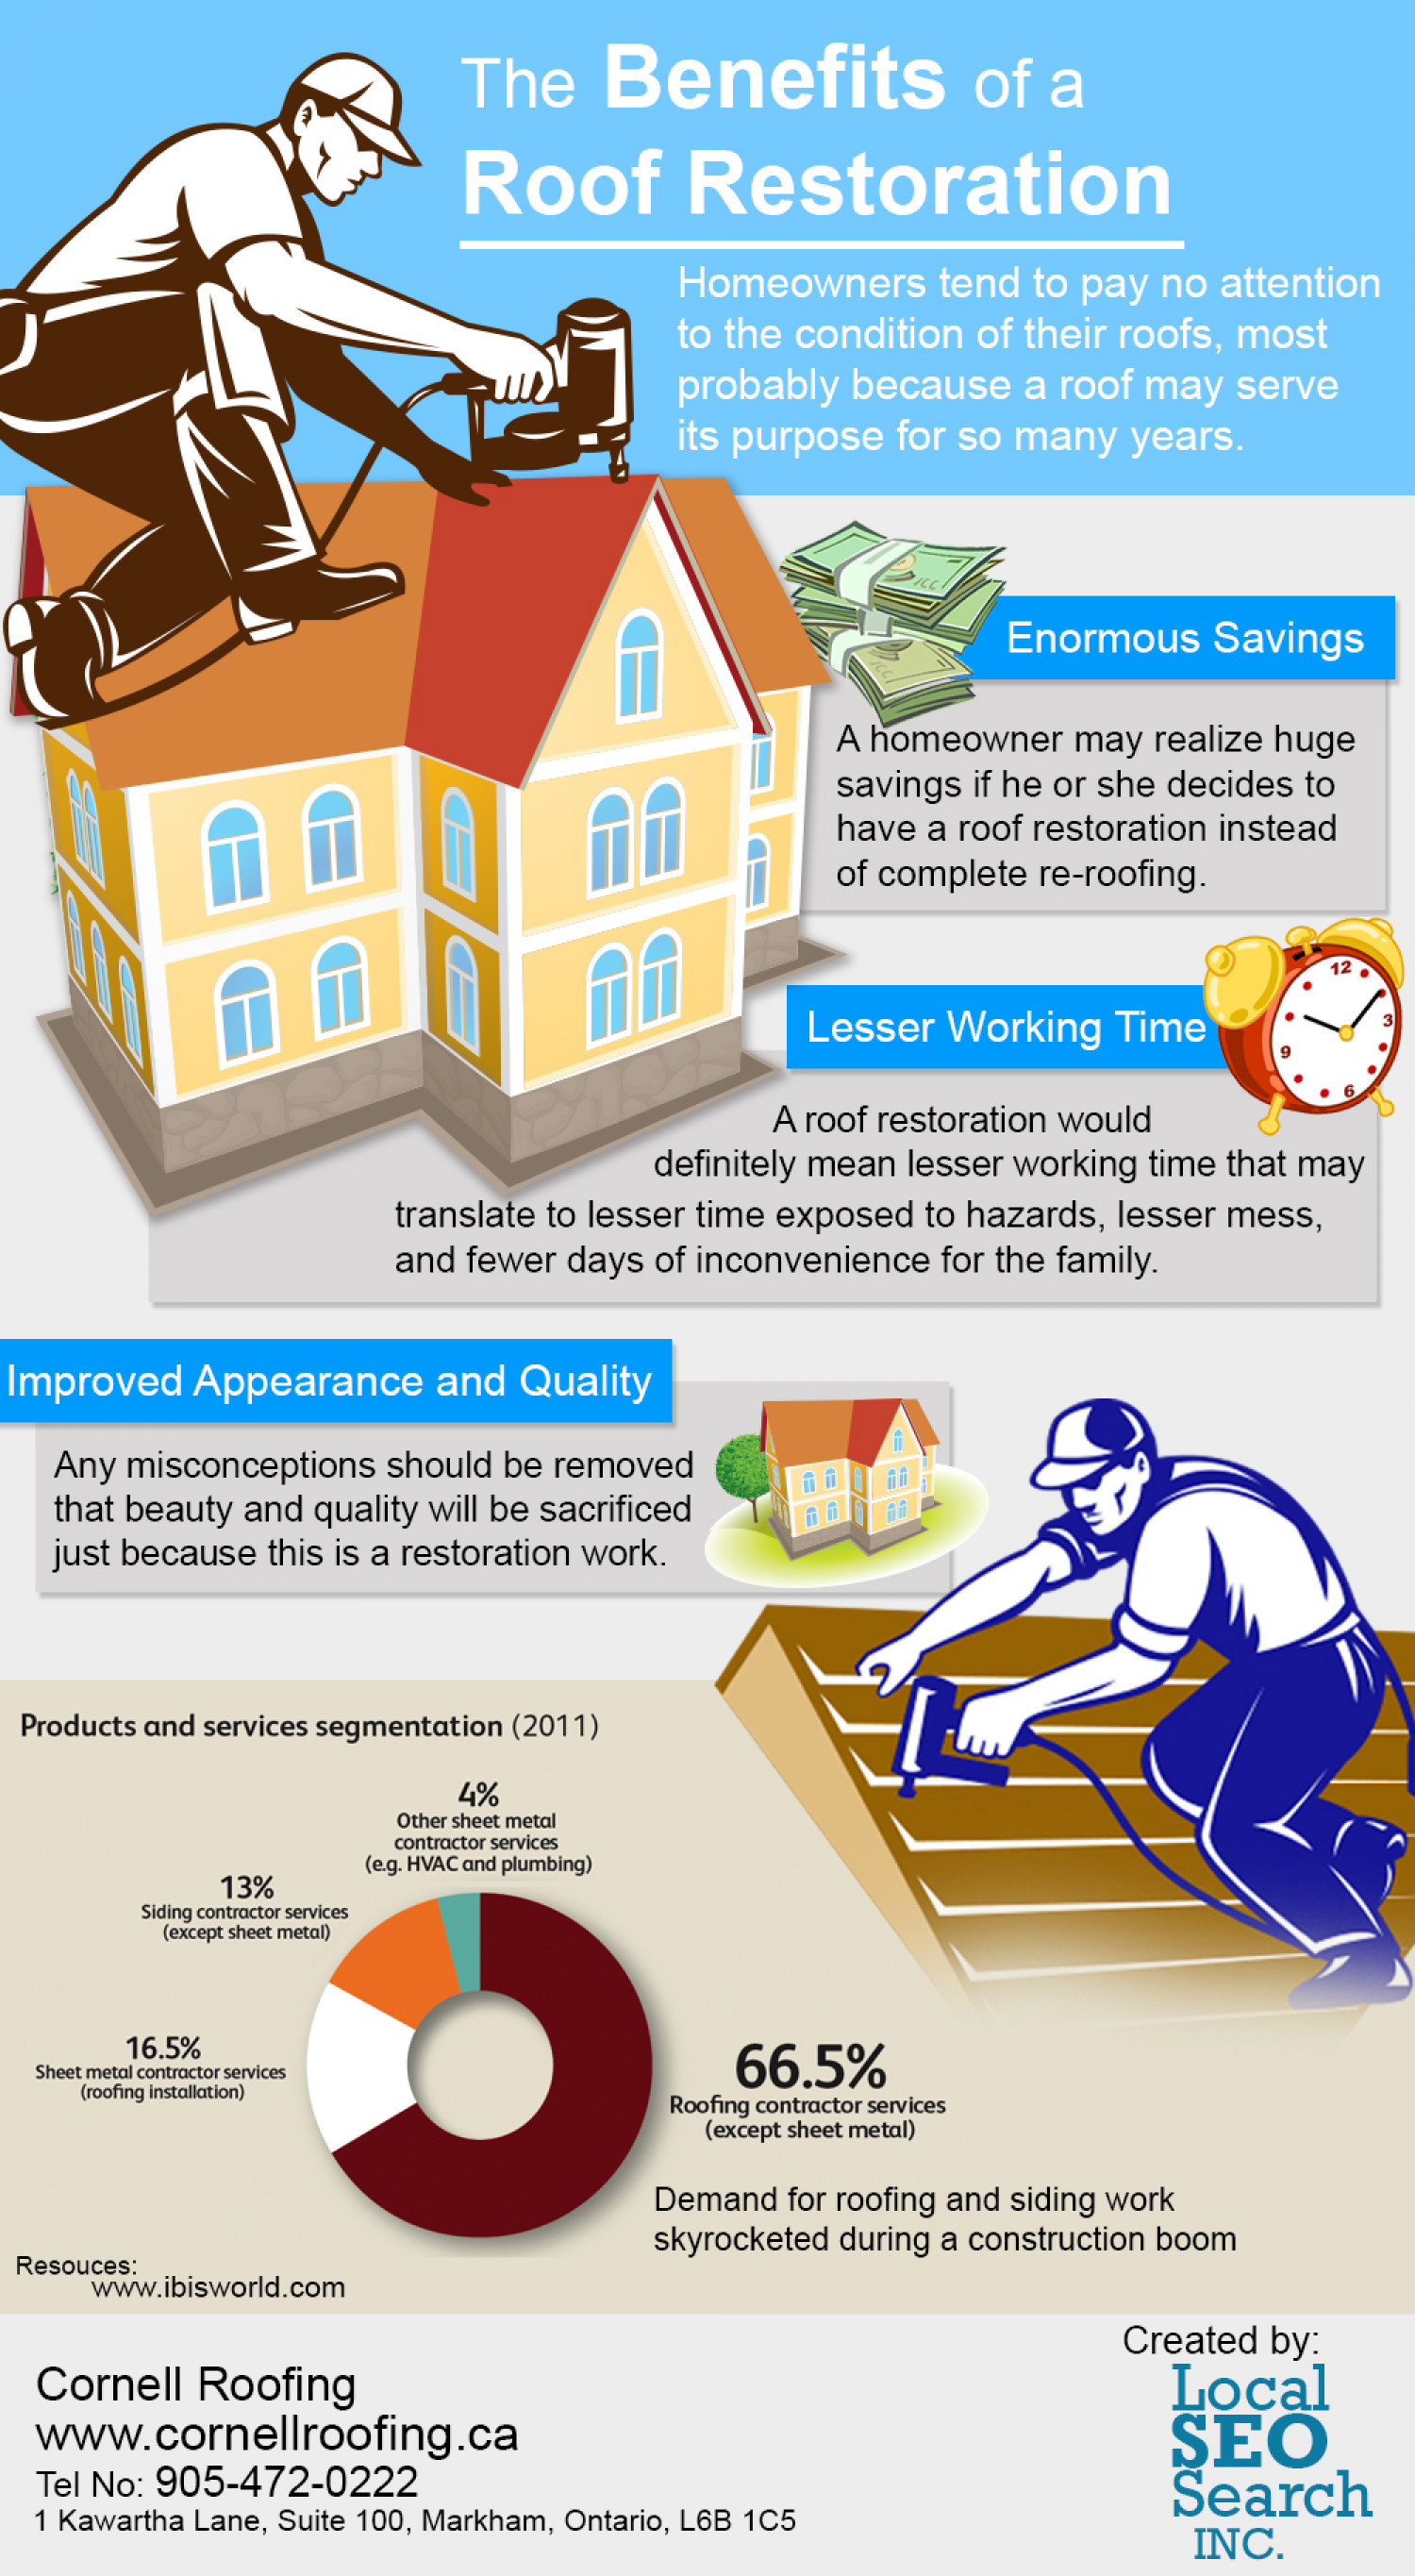 The Benefits of Roof Restoration Infographic